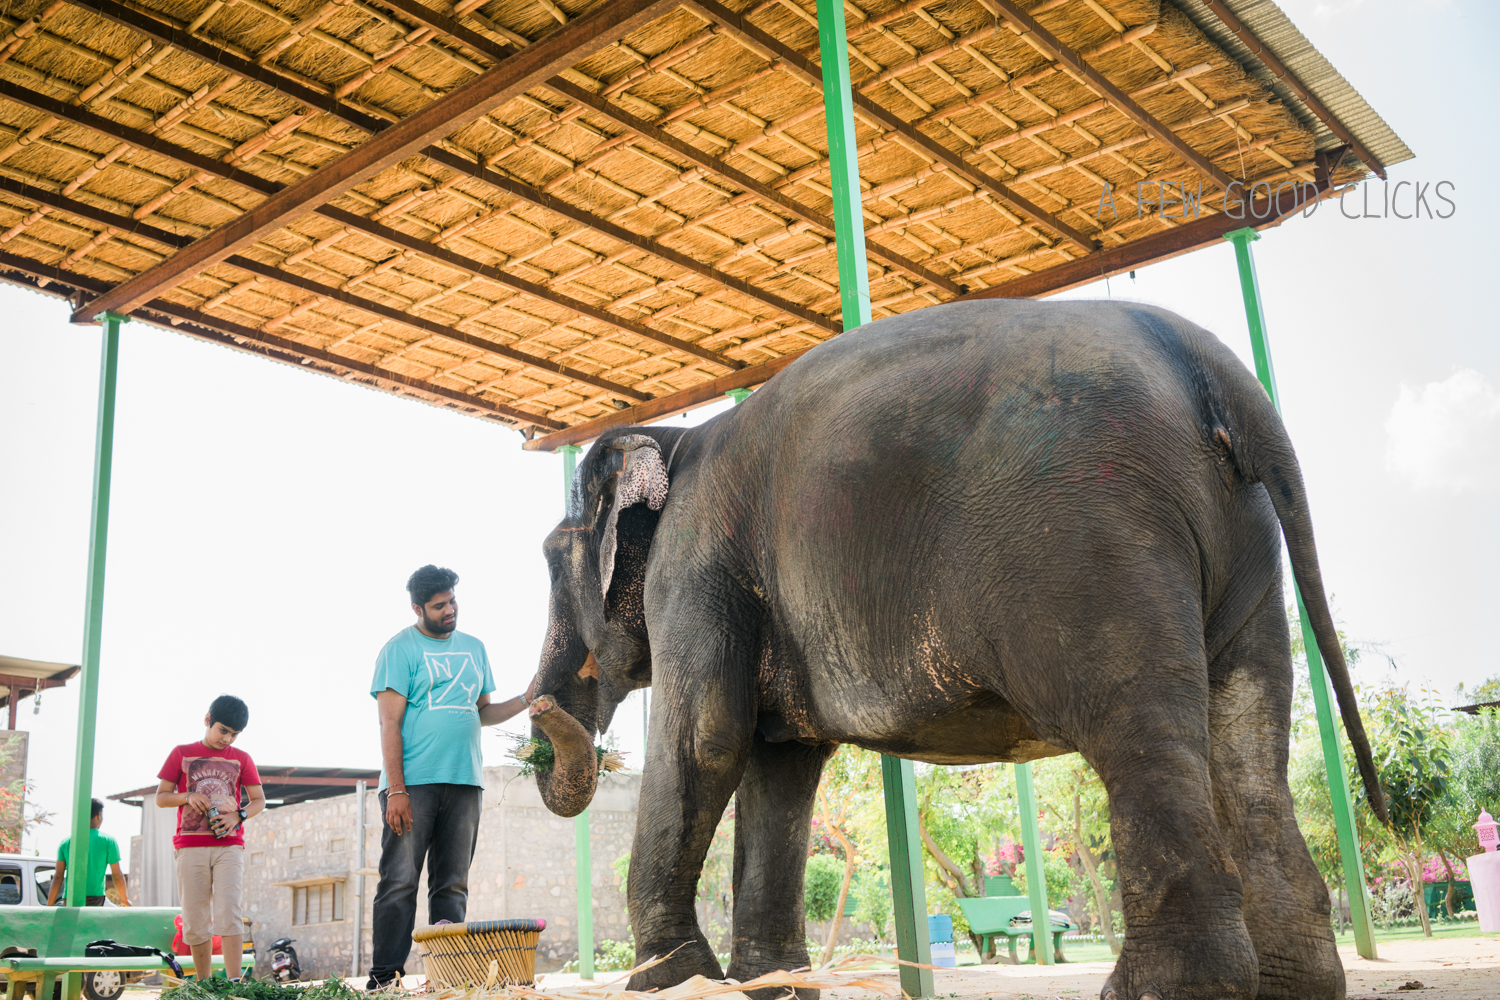 Chanchal - was well fed while we prepared for our next ordeal with Shakir, the mahout.Their caretakers are called Mahouts. Their painstaking attention to detail, transforms their habitat into a flourishing play ground at  elephant farm  just a few kms from Amber fort in Jaipur.